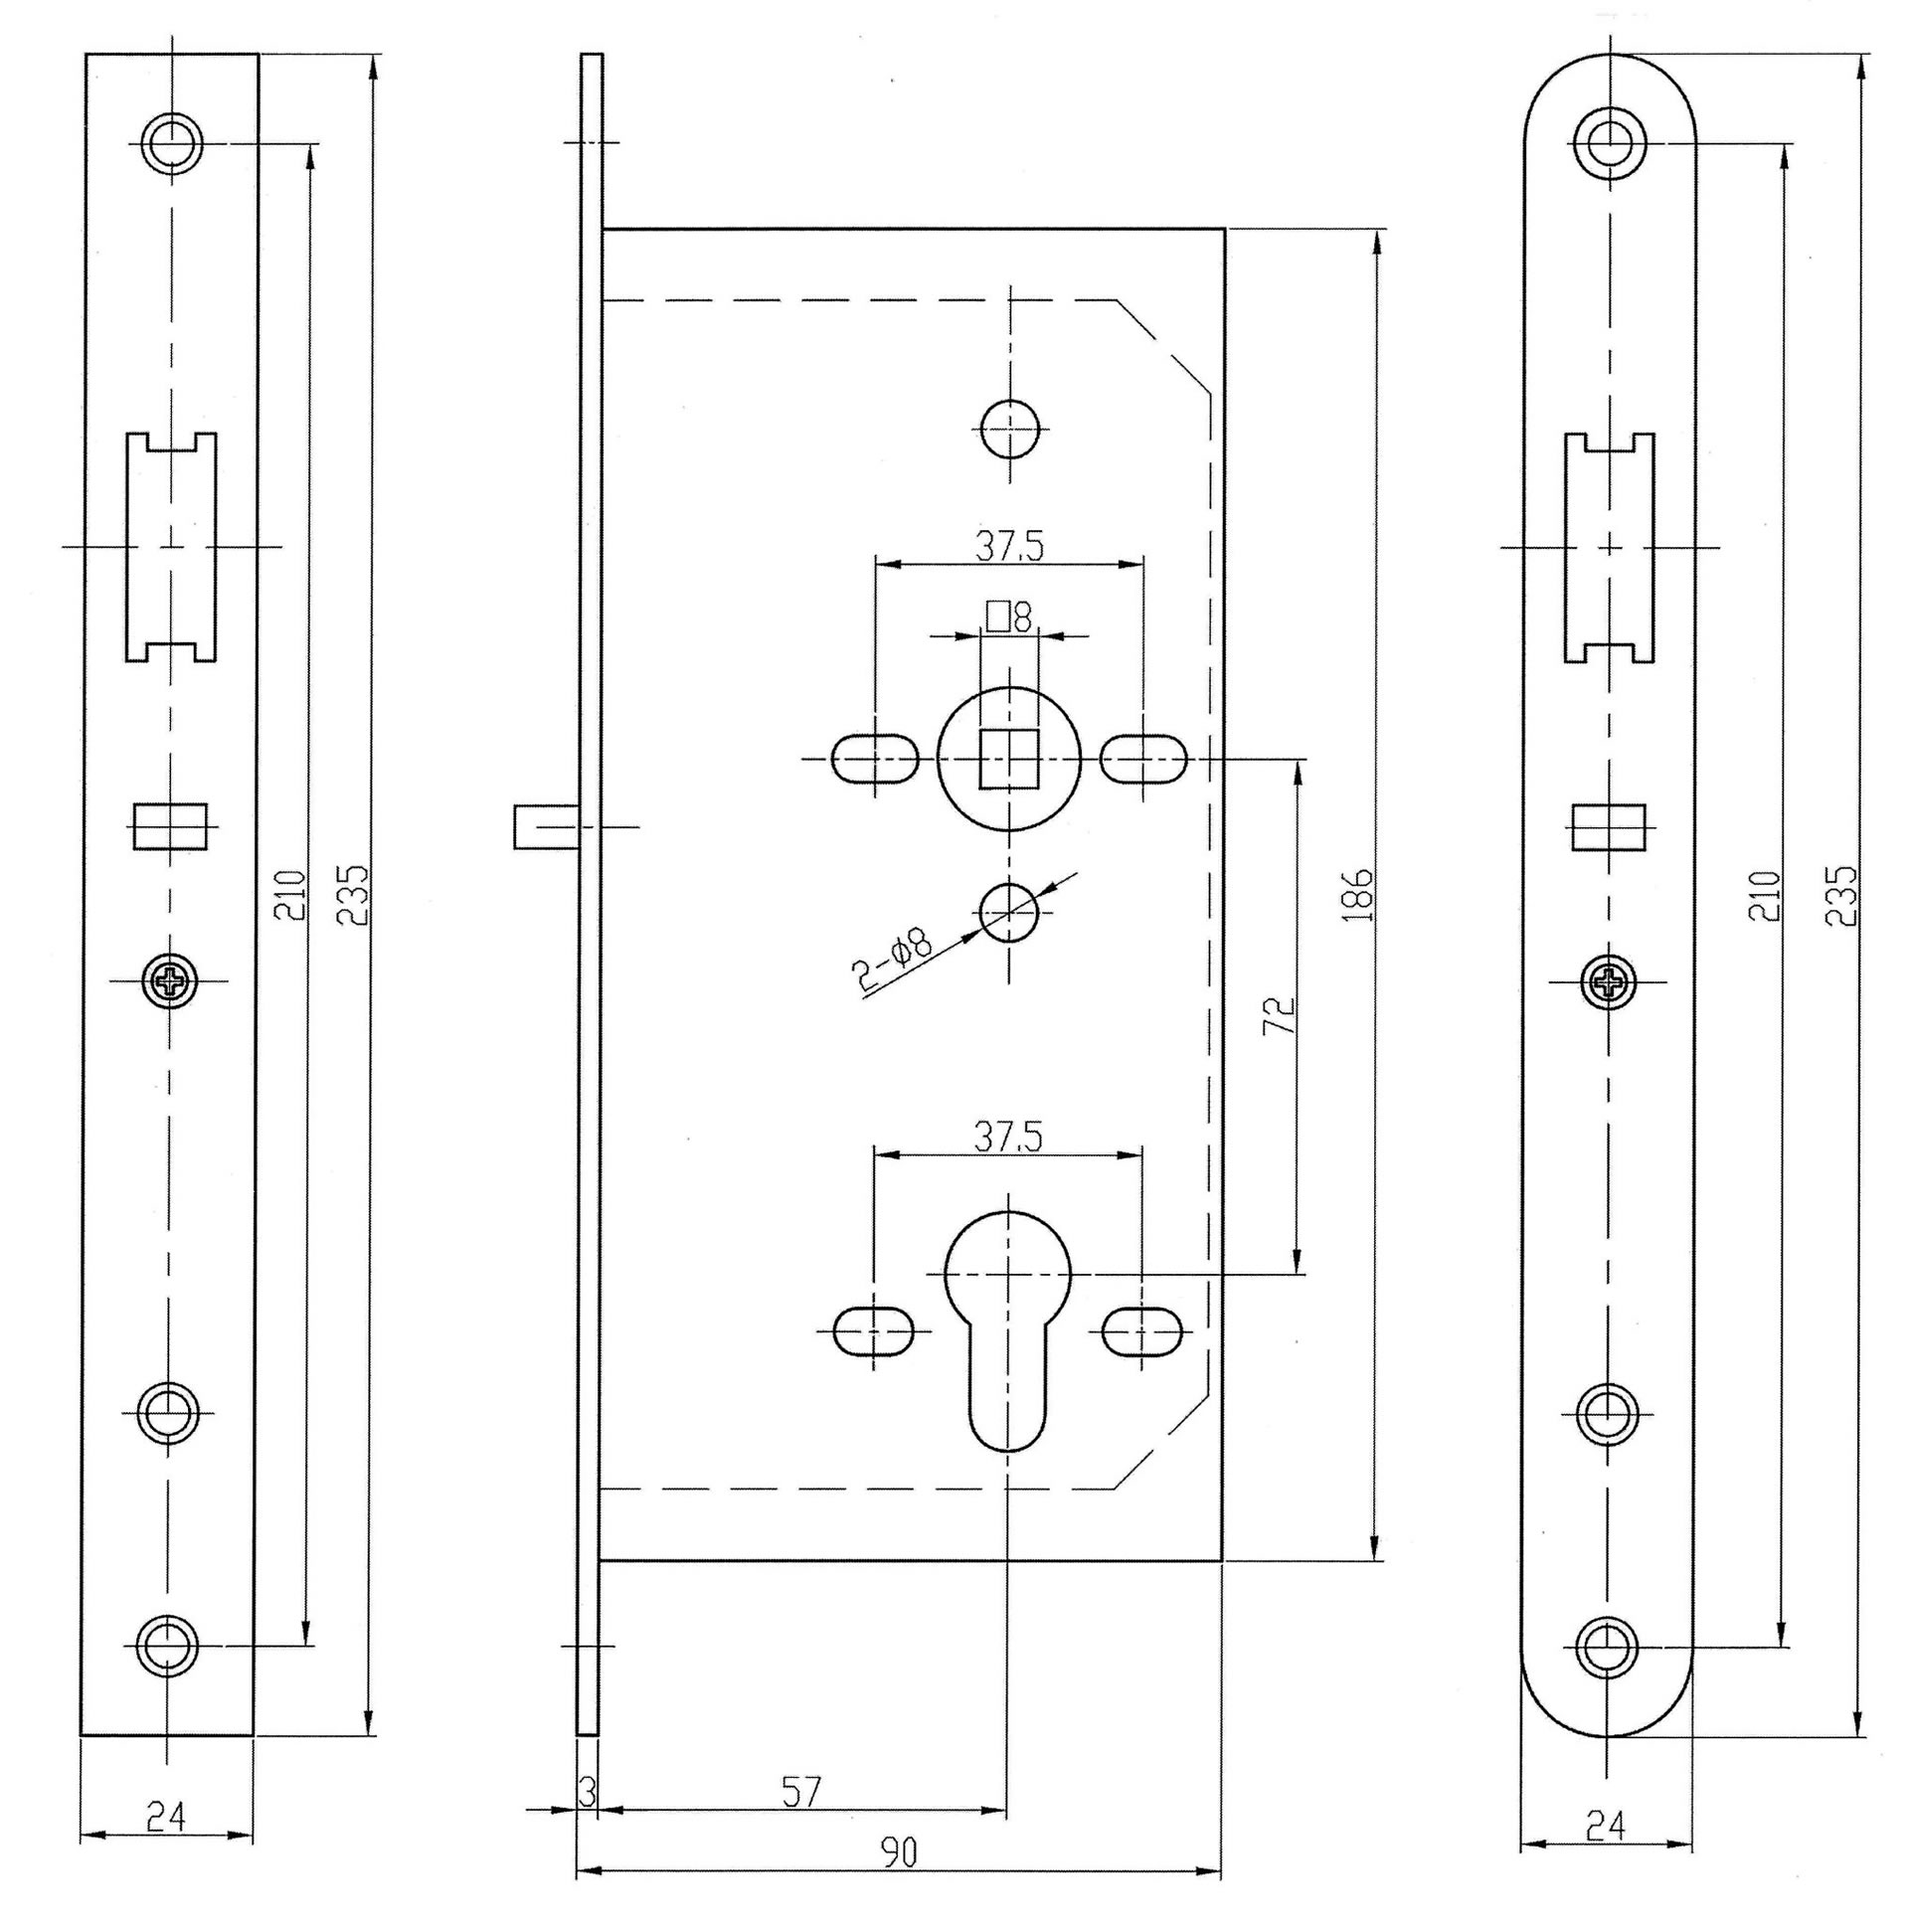 Technical Drawing Din Standard Allenbradley Micro810 Quick Tutorial Latched Switching Zts Array Night Latch C W Anti Thrust Bolt Nl1 At Sss Newstar Rh New